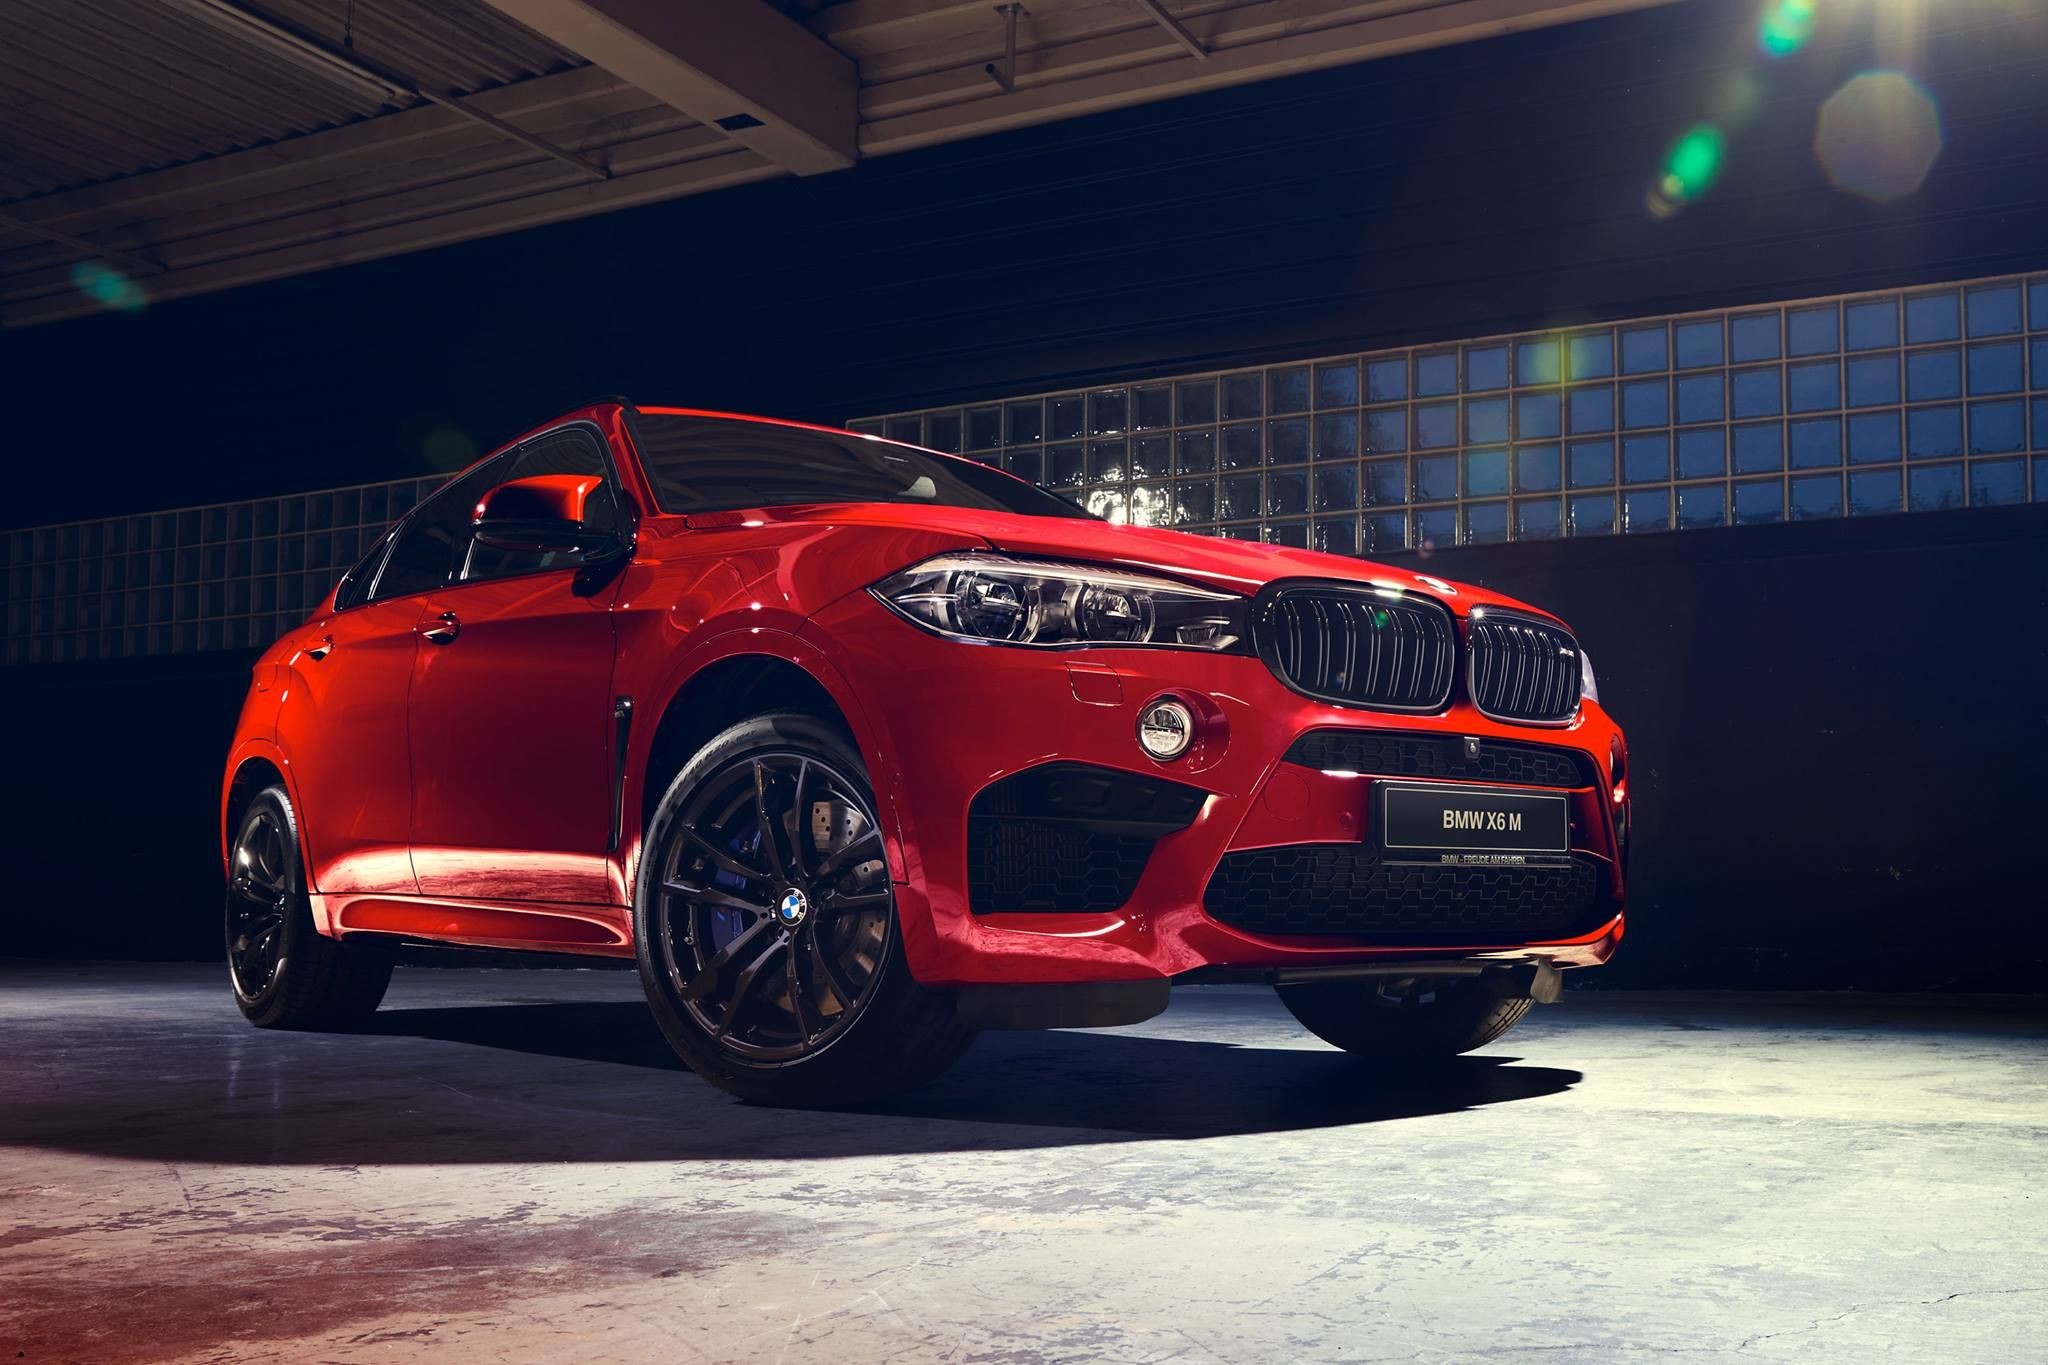 Bmw F86 X6m Sac Melbournered Mperformance Sheerdrivingpleasure Xdrive Drift Carbonfiber Tuning Wheels Outdoor Provocative Ey Bmw Bmw X6 Hot Cars